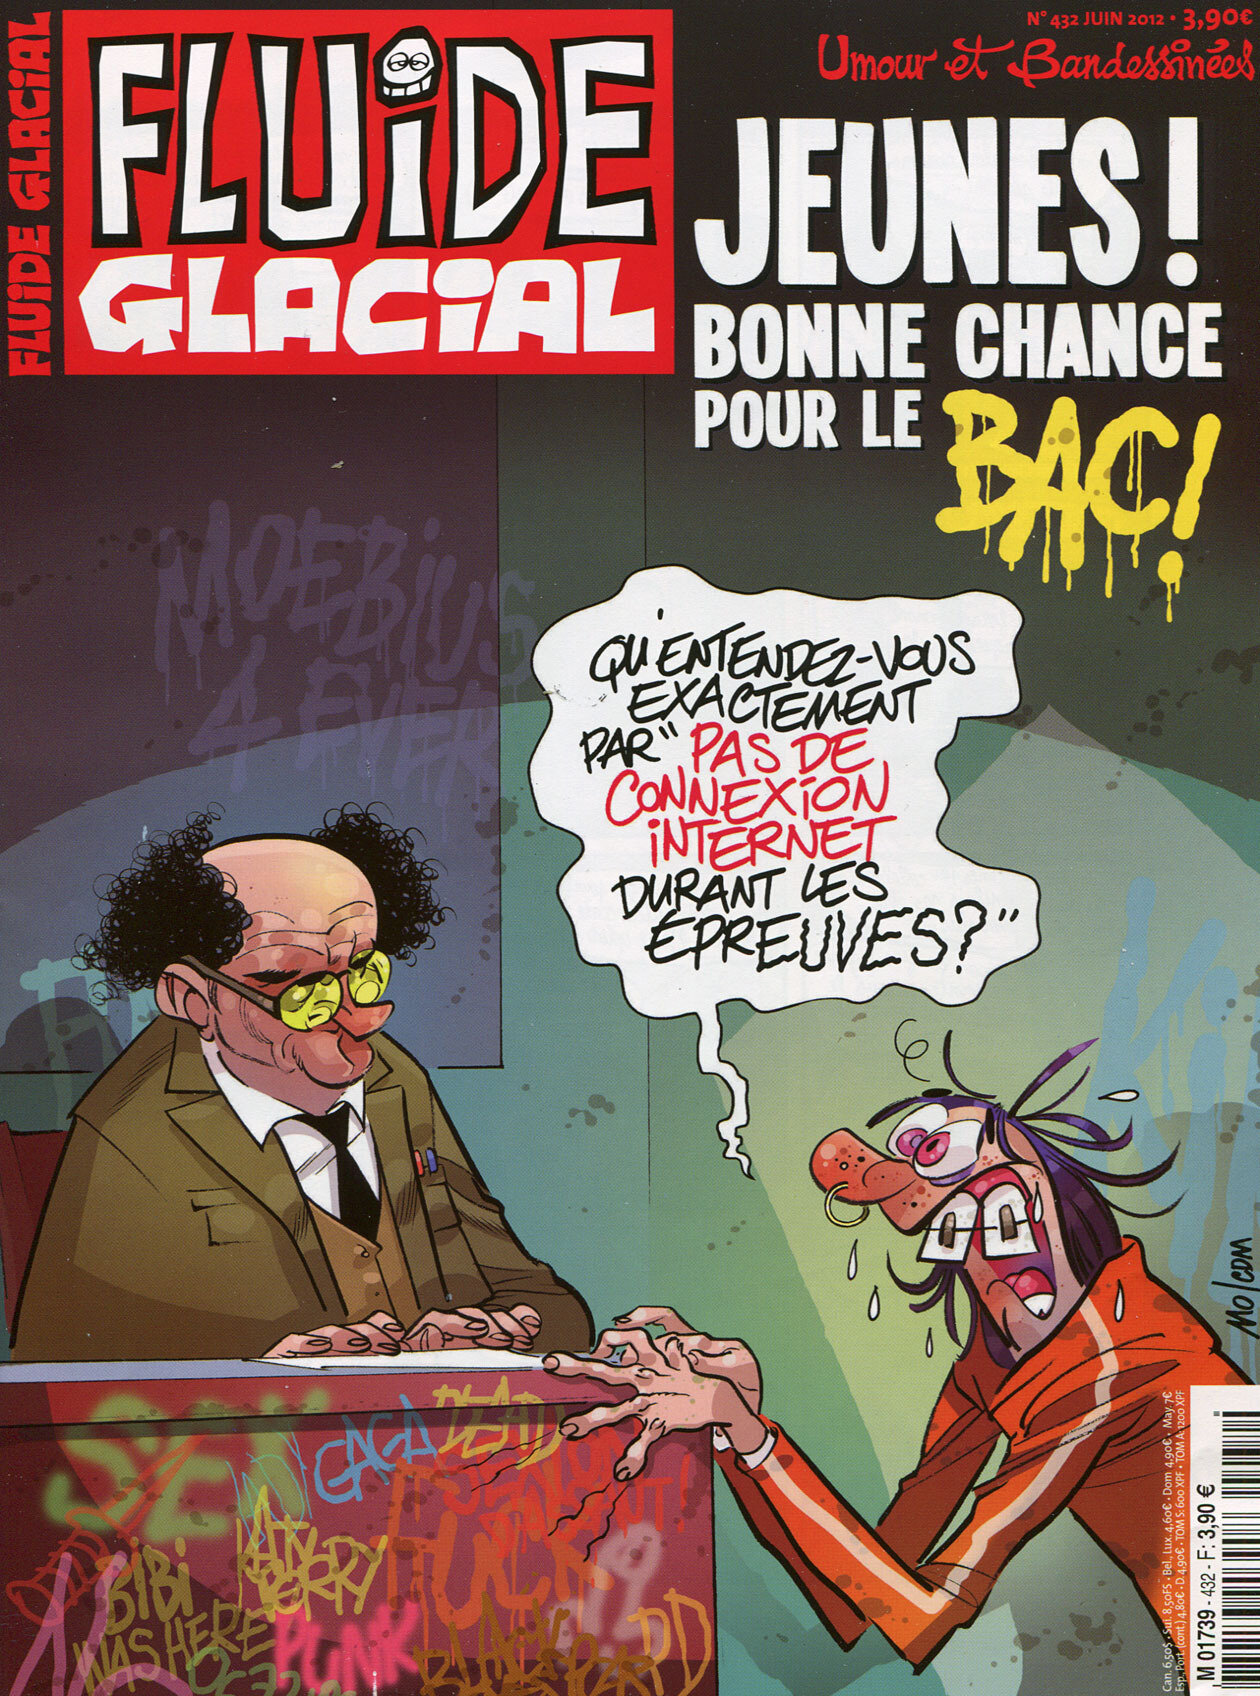 bac fraude education nationale mamouth humour